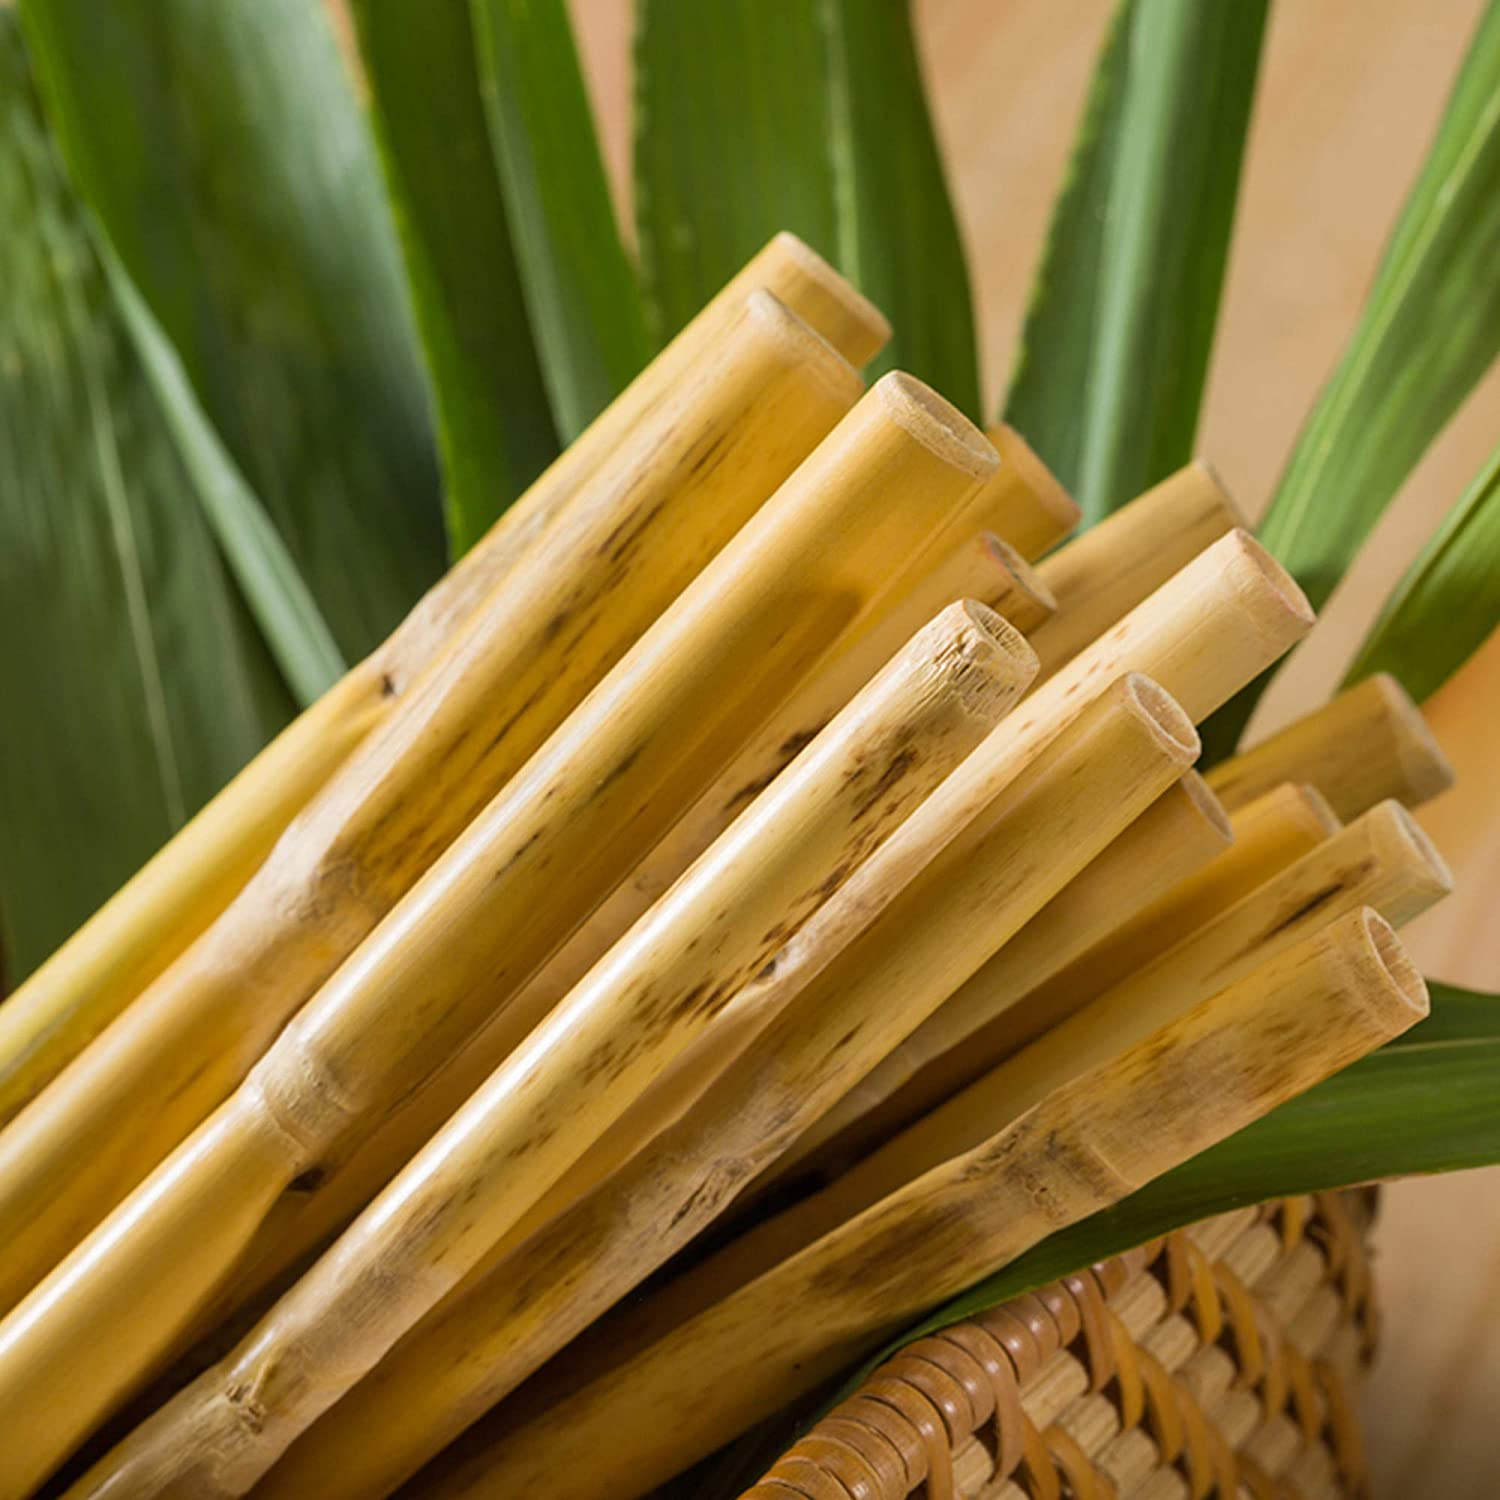 Bio Earthware   Natural & Organic Bamboo Grass Straws   Washable & Reusable  Drinking Straws  Biodegradable, Environment Friendly & Compostable    Natural Alternative to Plastic (Set of 10) : Amazon.in: Health & Personal  Care